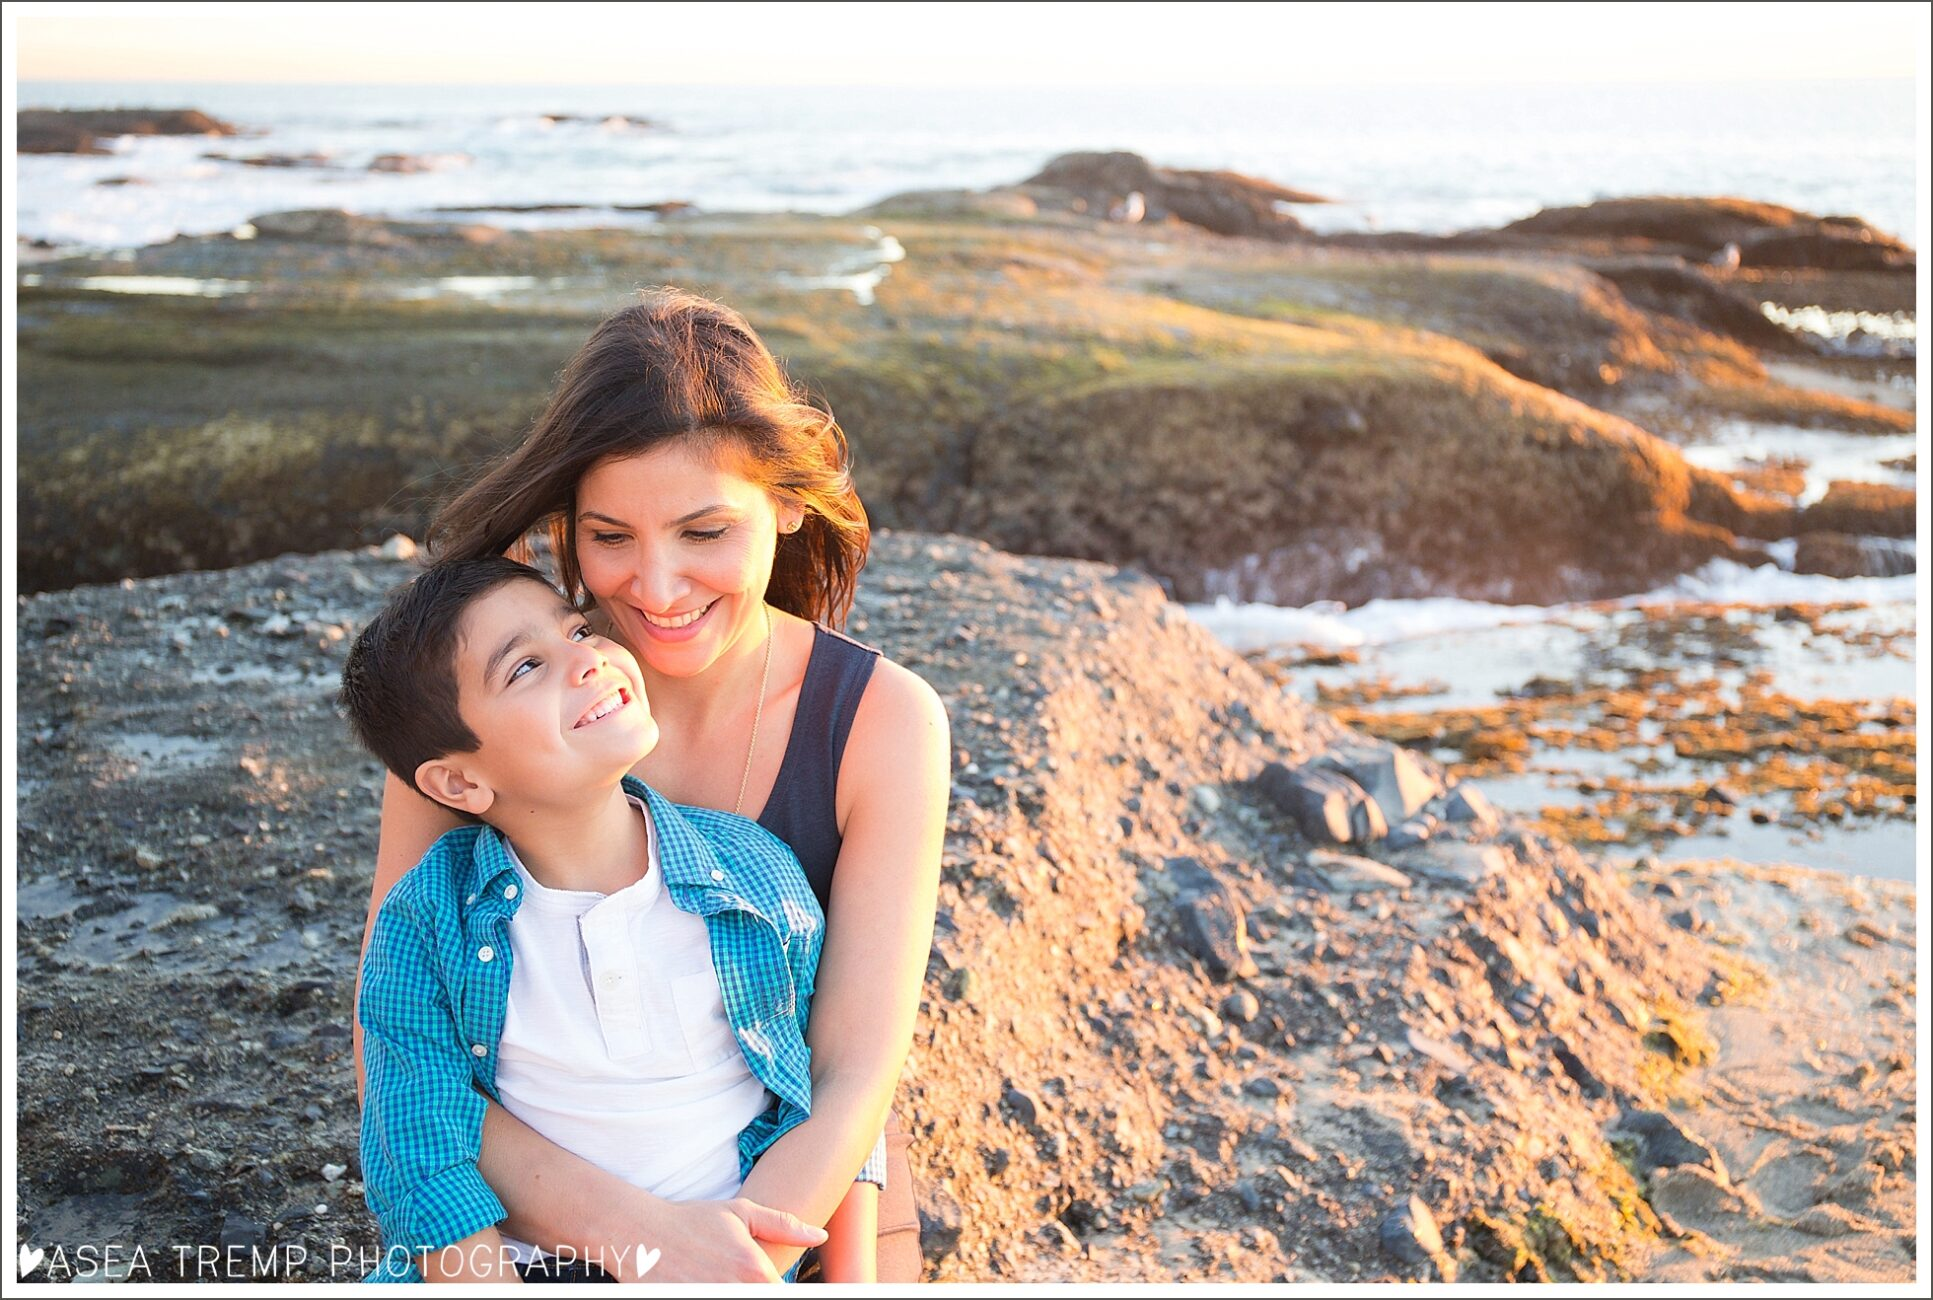 Aliso Beach Family Session Asea Tremp Photography